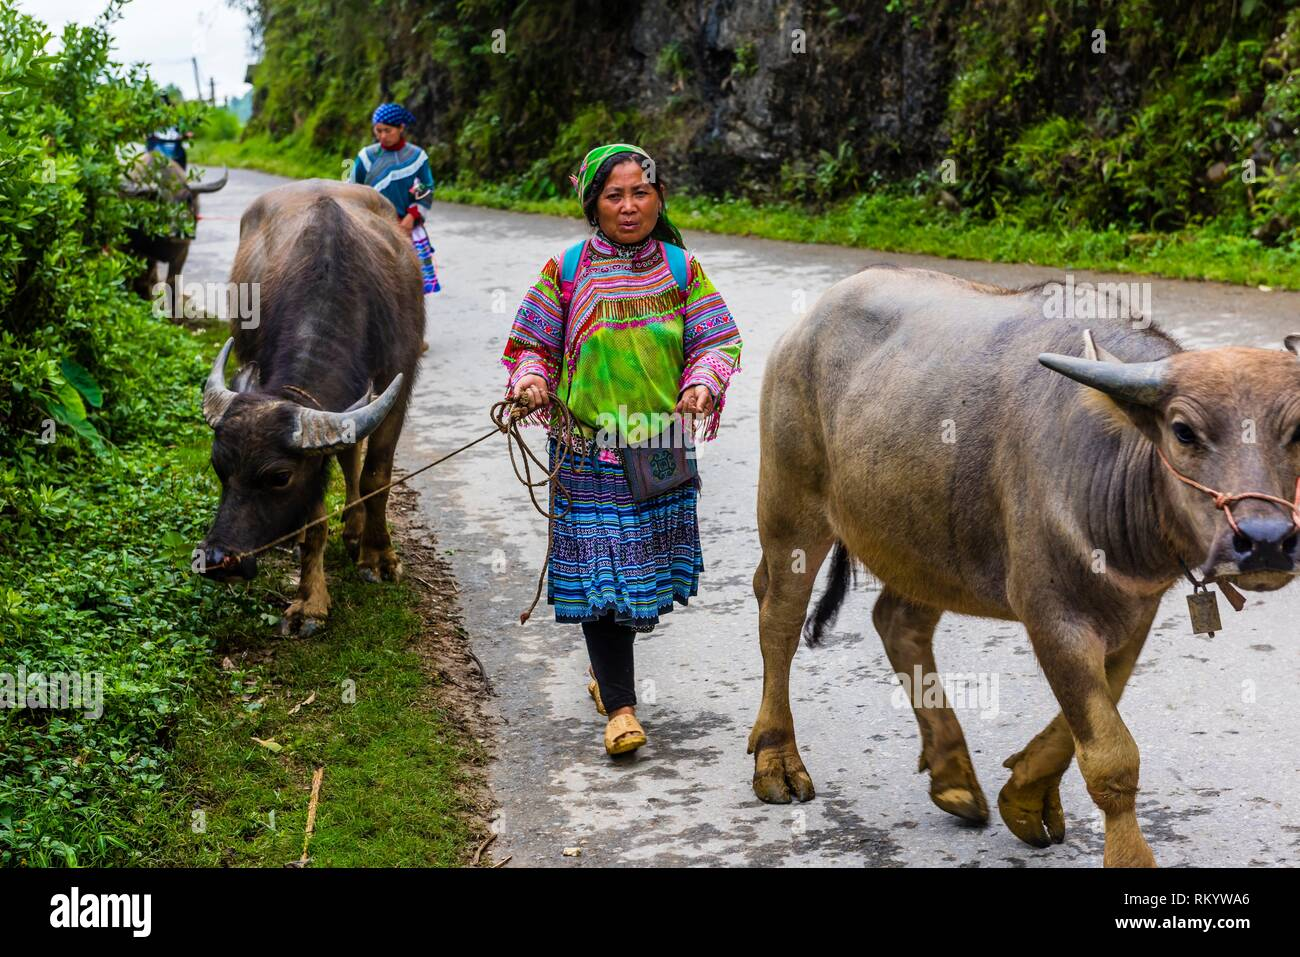 Flower Hmong (hill tribe) women bringing water buffalo from the Sunday market at Bac Ha (near Sapa) northern Vietnam. - Stock Image